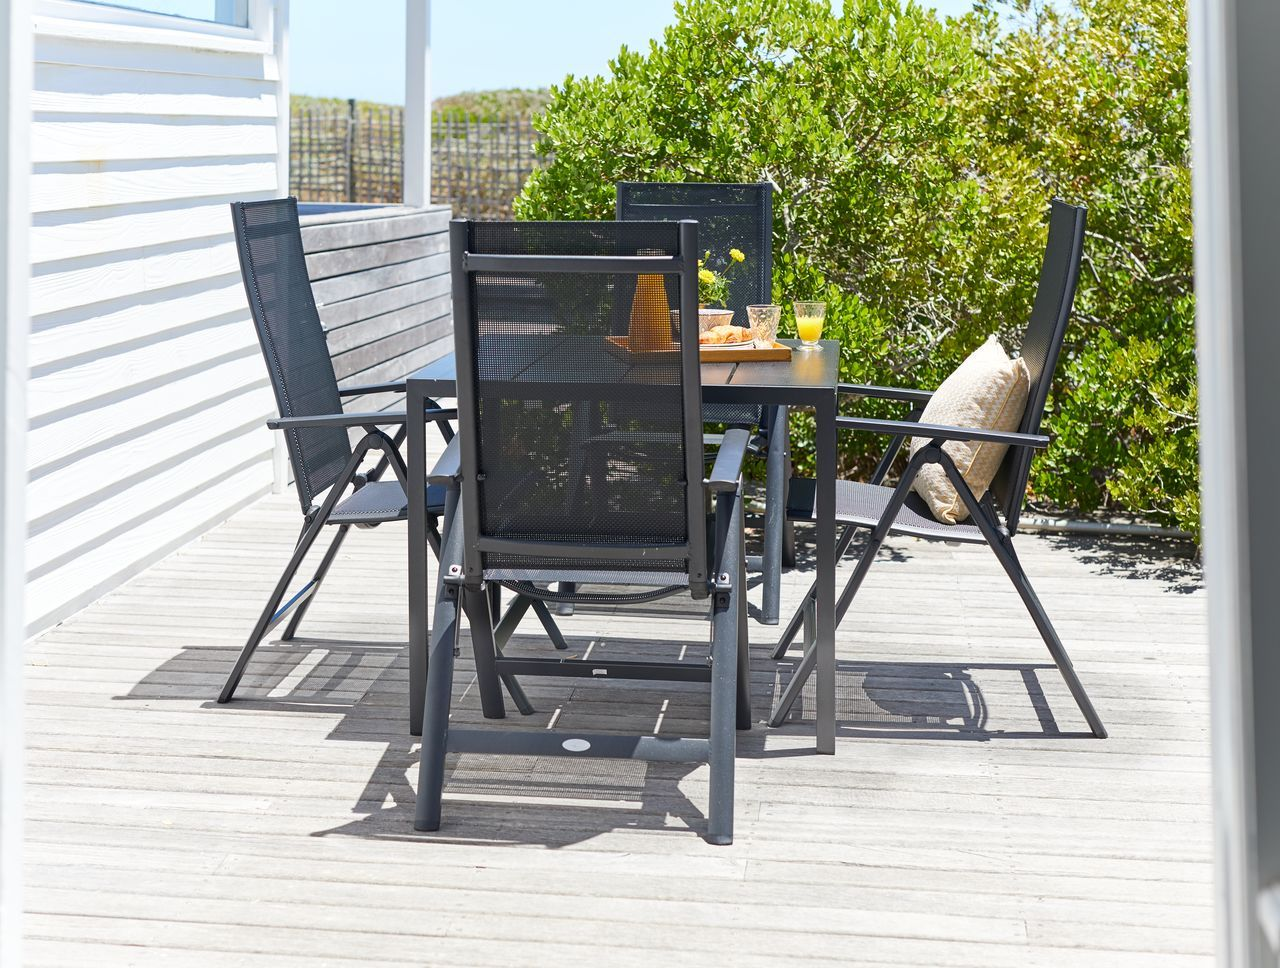 garden dining sets perfect for any outdoor space terrace or as rh pinterest com